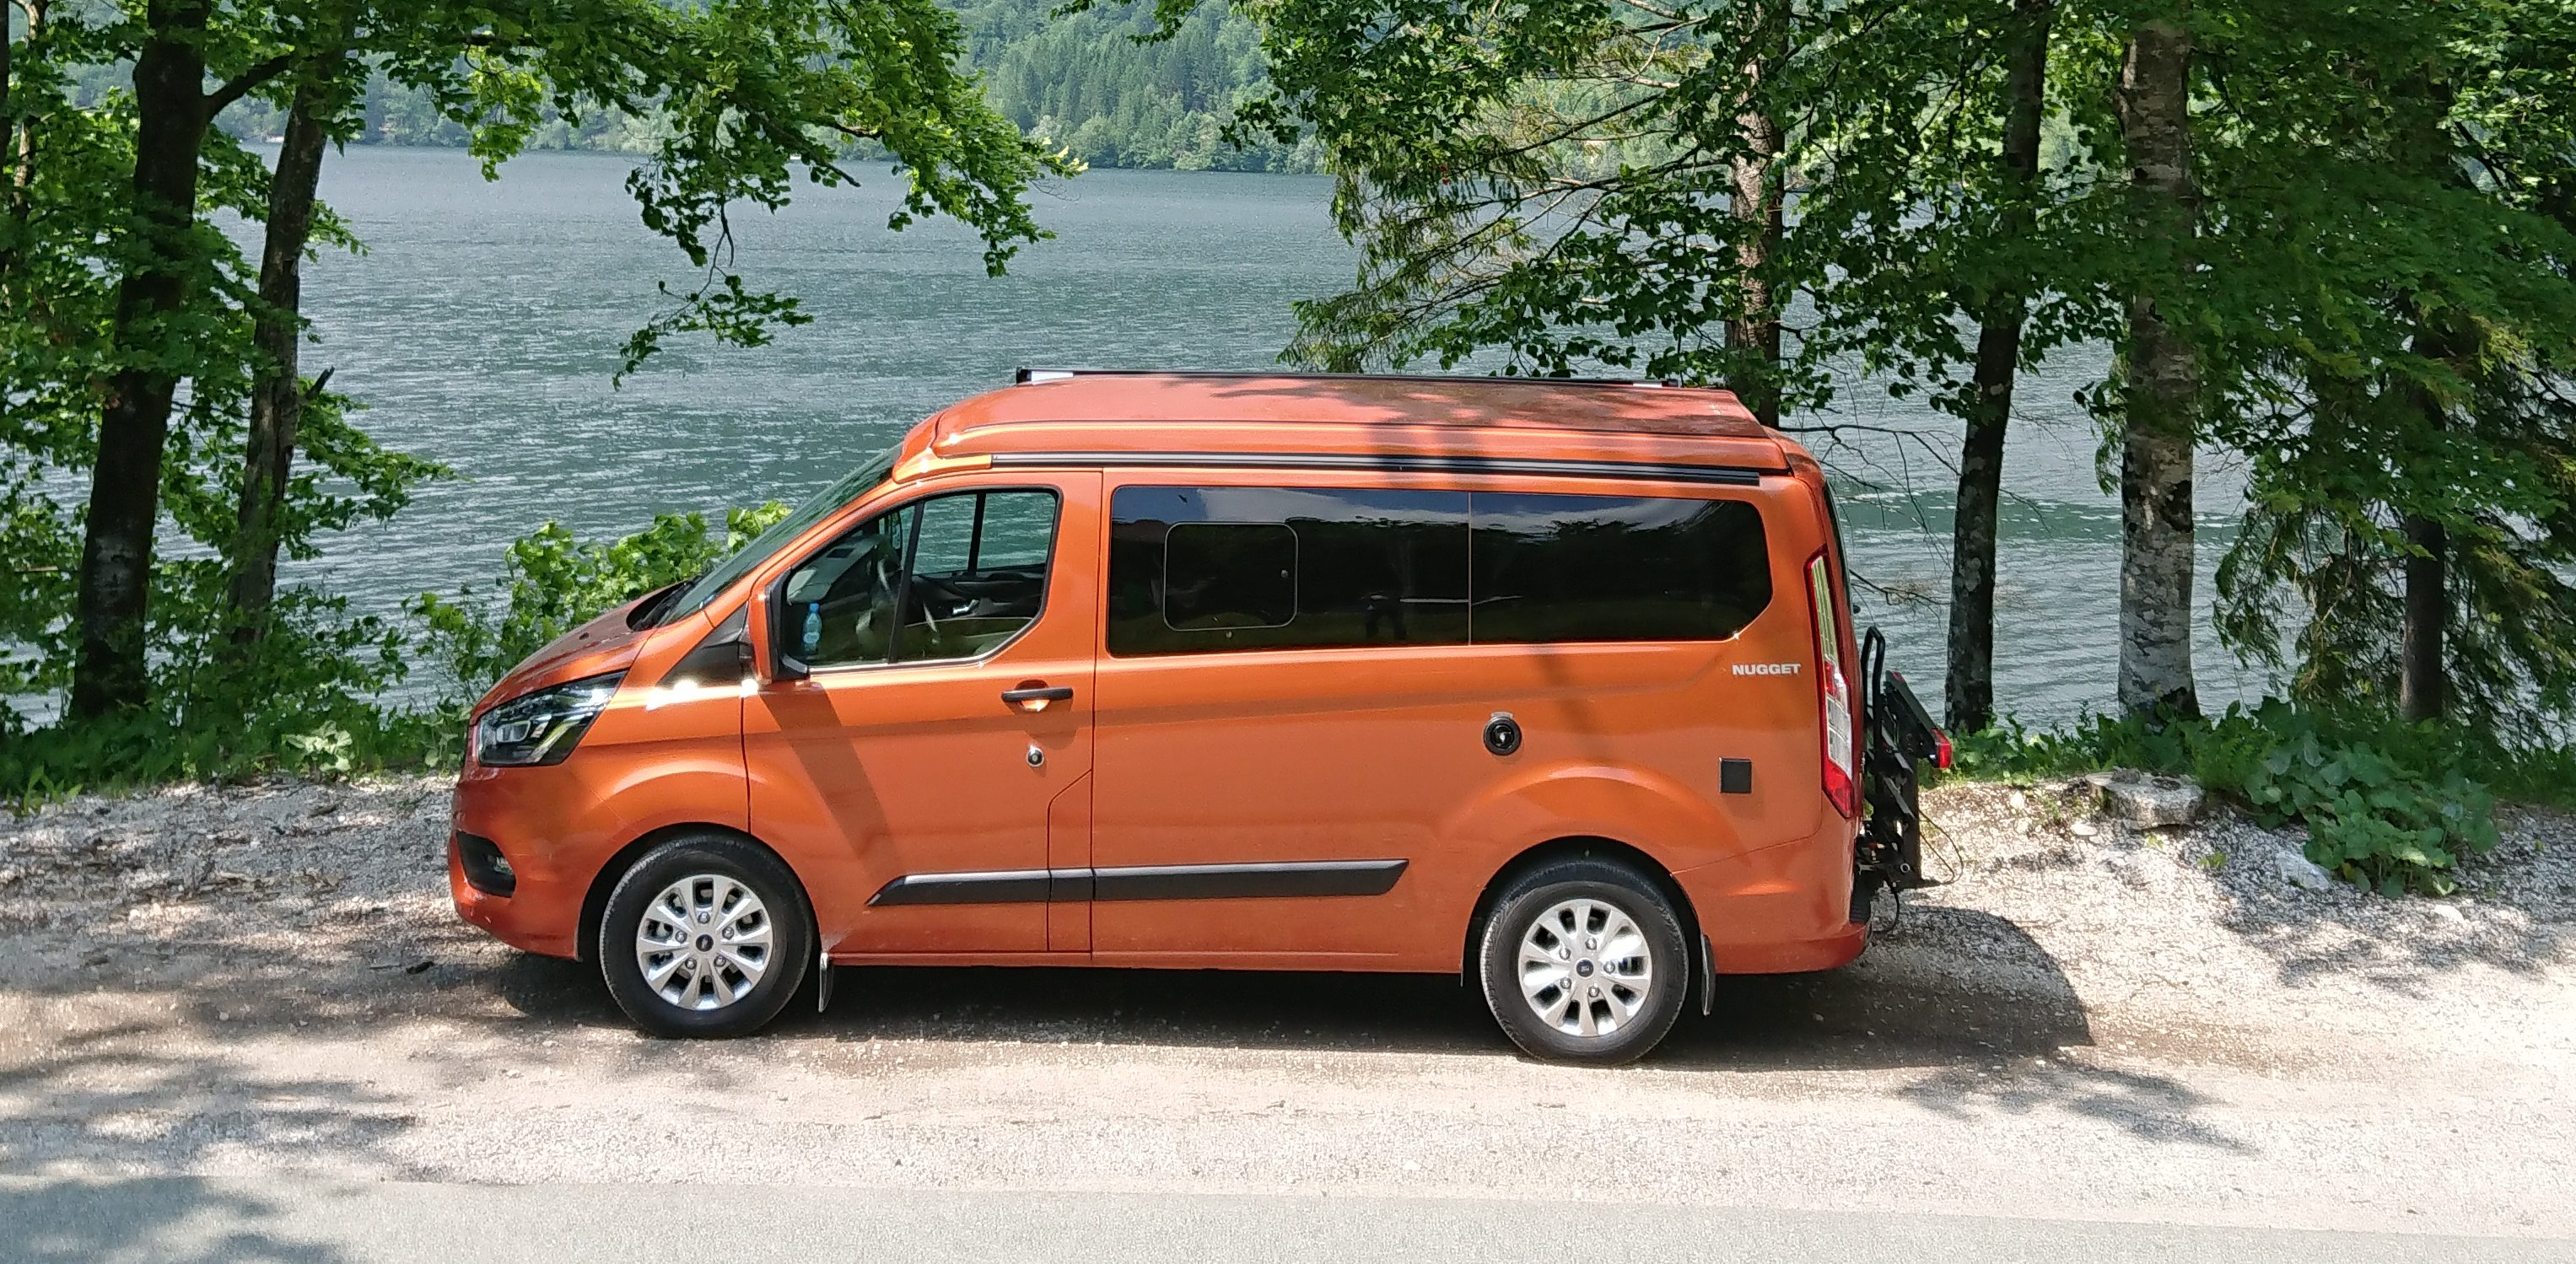 Three days of adventure in the Ford Nugget camper van